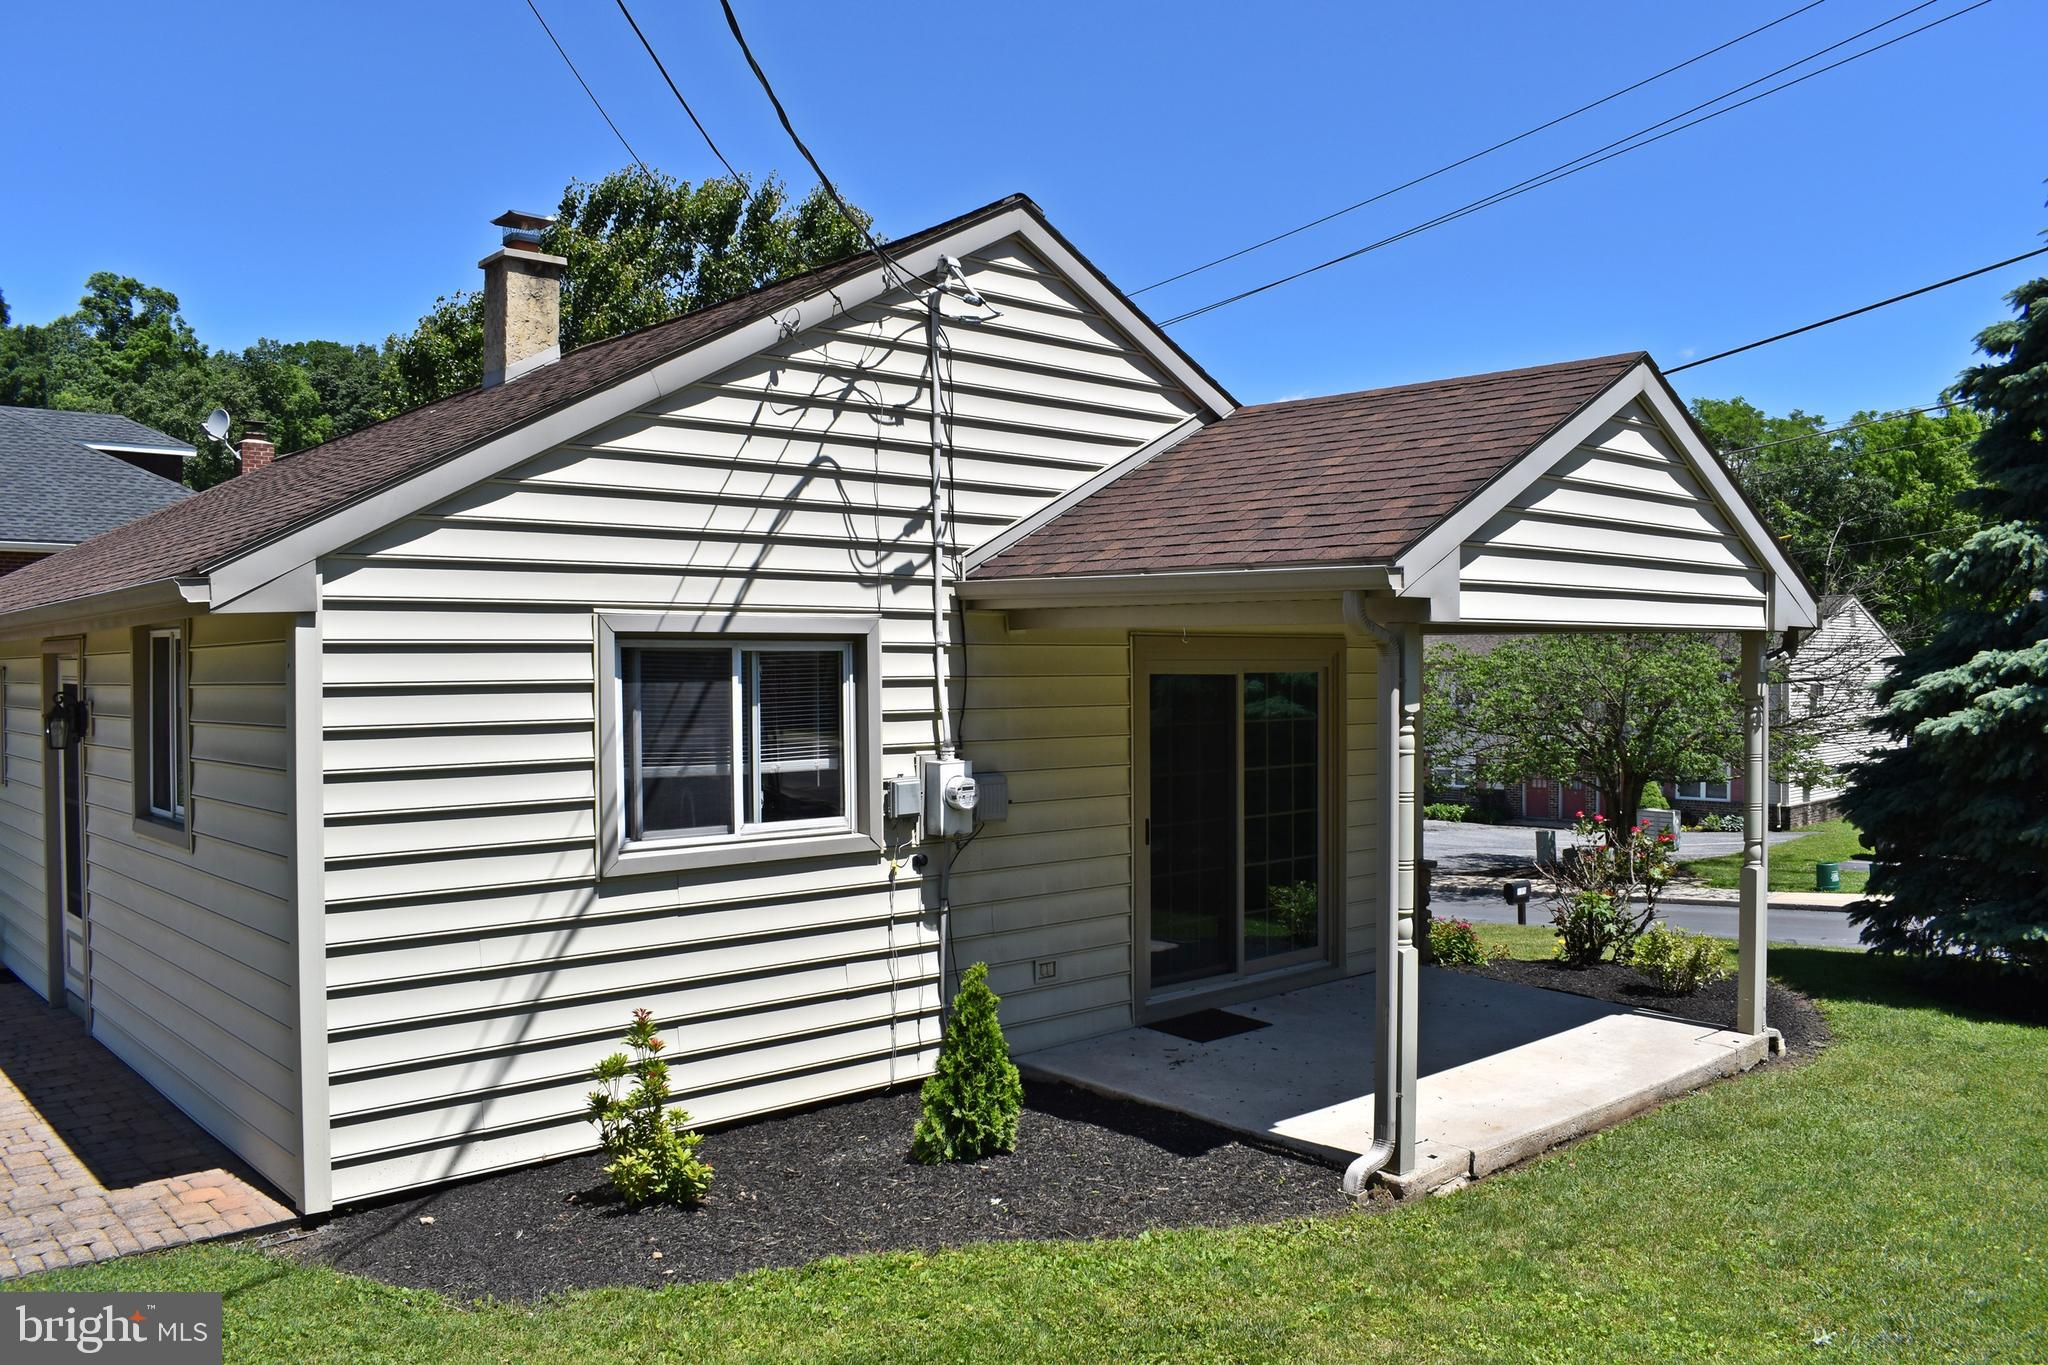 199 E FULTON STREET, Ephrata, 17522, MLS # PALA133846 | RE/MAX of Reading